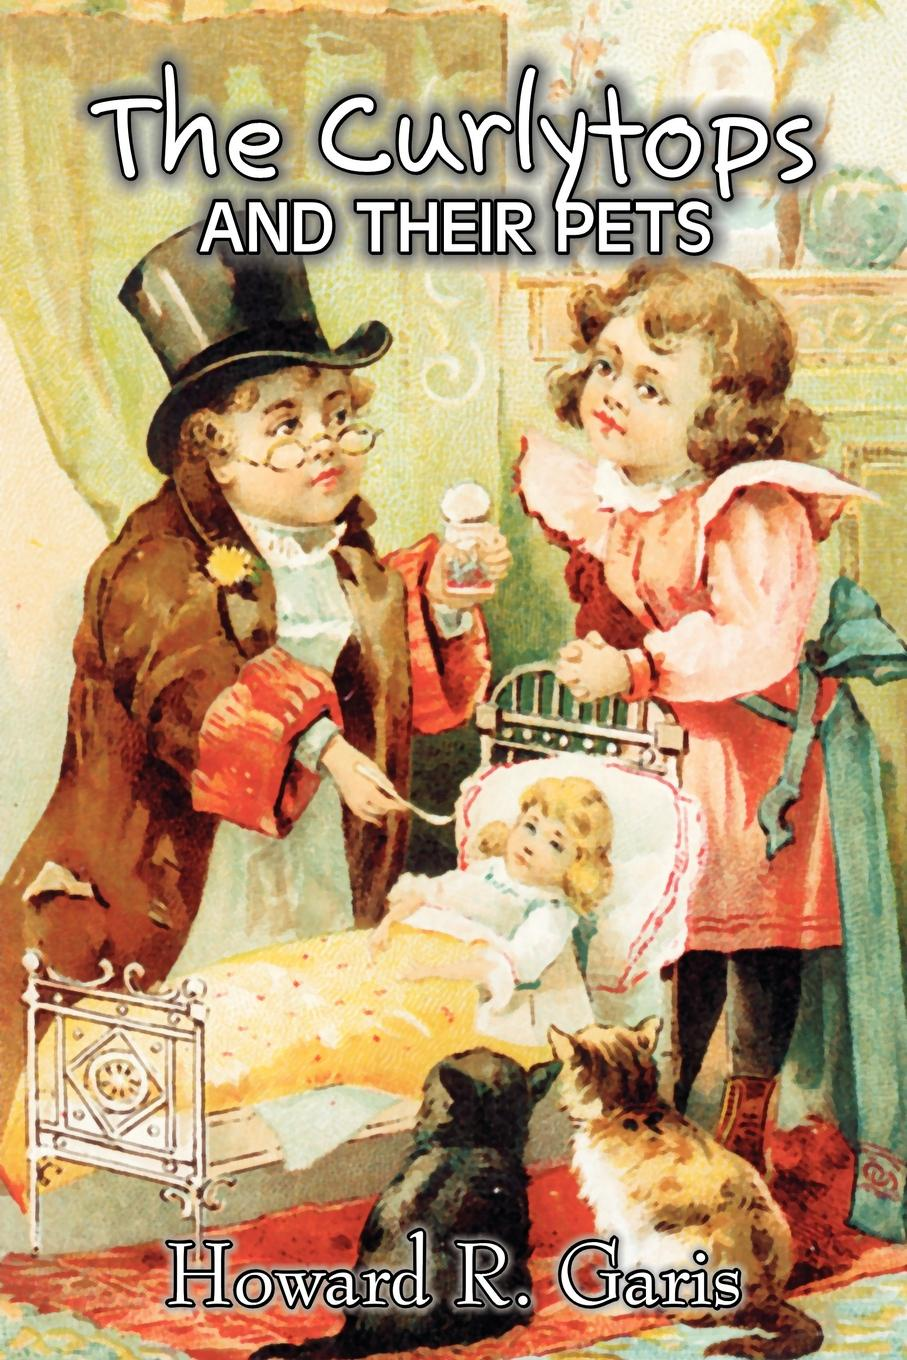 Howard R. Garis The Curlytops and Their Pets by Howard R. Garis, Fiction, Fantasy & Magic, Animals